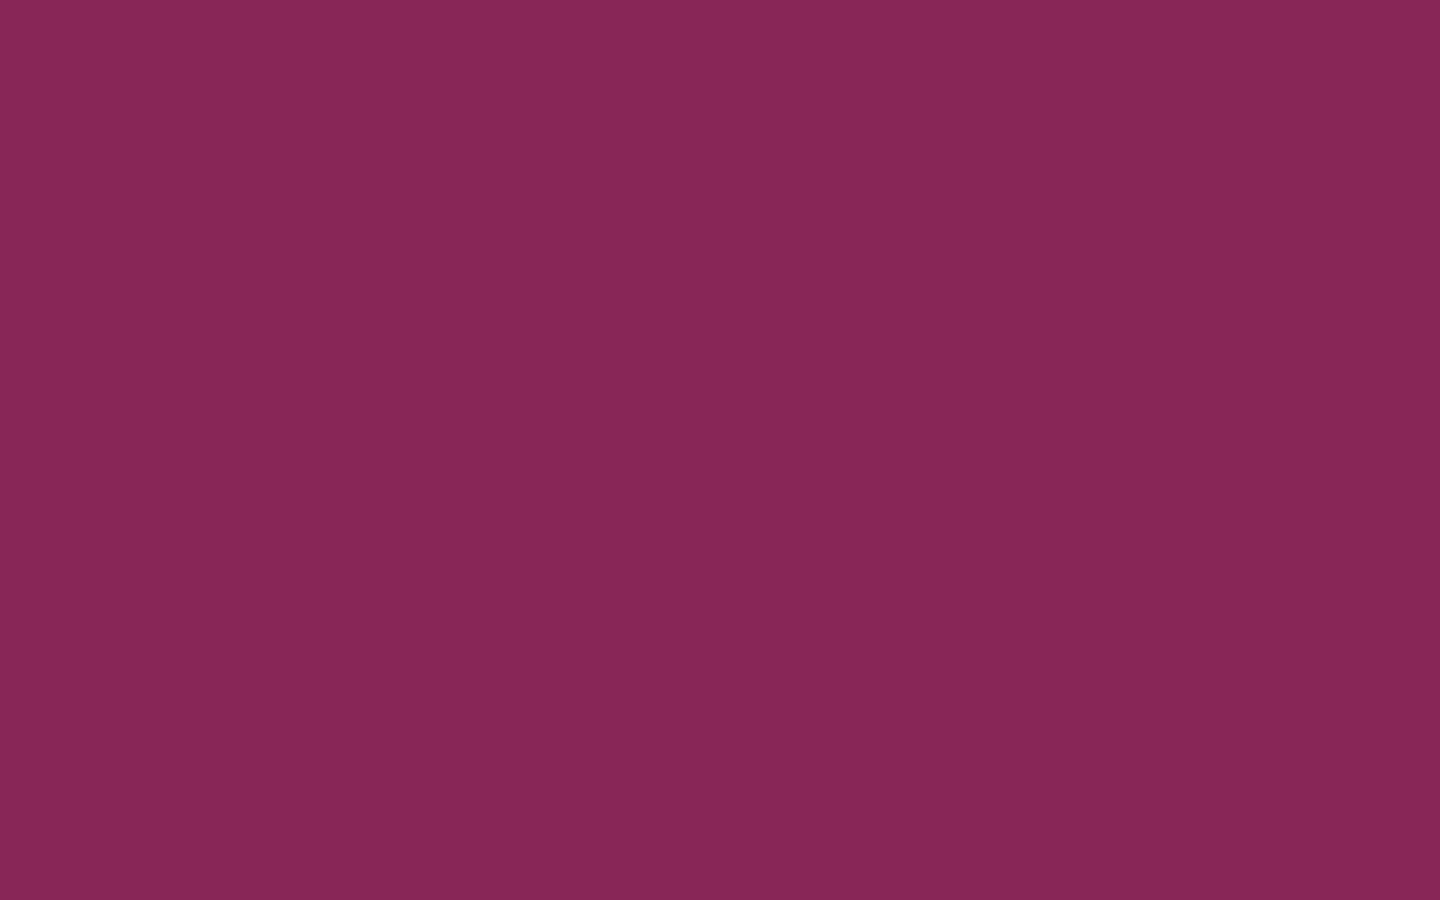 1440x900 Dark Raspberry Solid Color Background